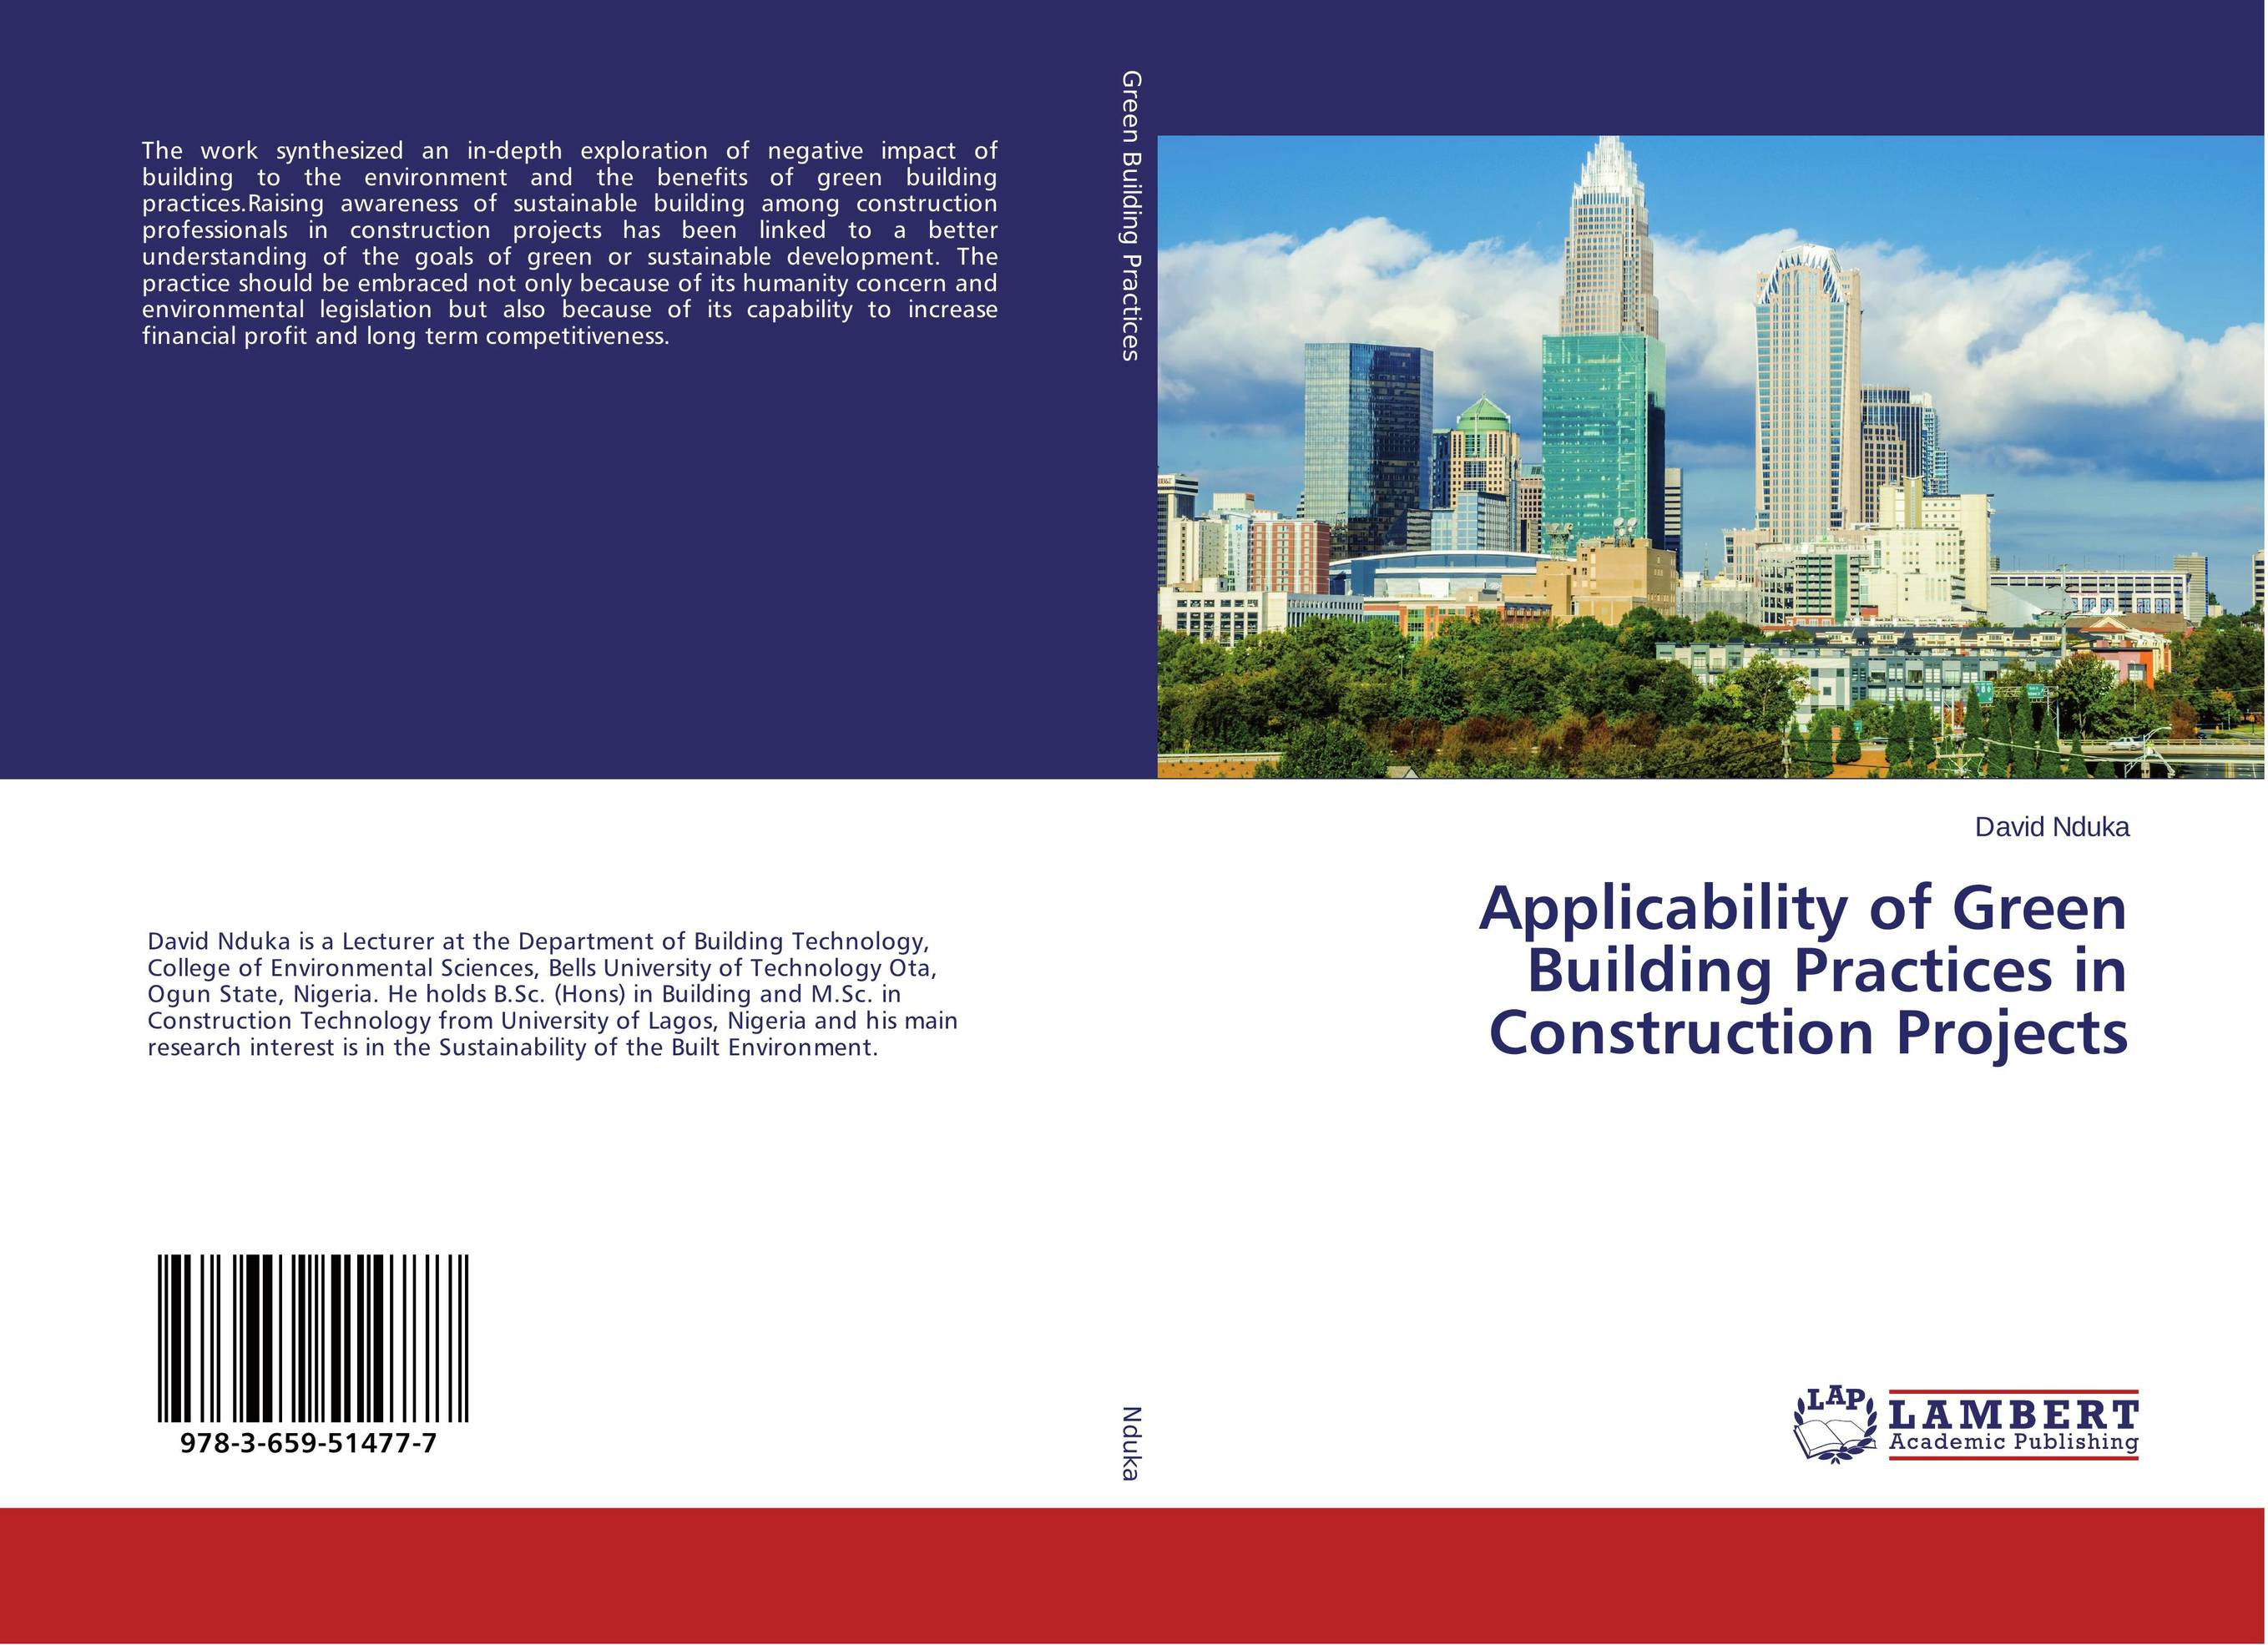 use of green building constructions environmental sciences essay The environmental impact and energy environmental sciences essay abstract the question of designing a green building has been widely made in the architecture field by scholars such as hikmat h ali and saba f al nsairat researching the development of green building assessment tools for developing countries.